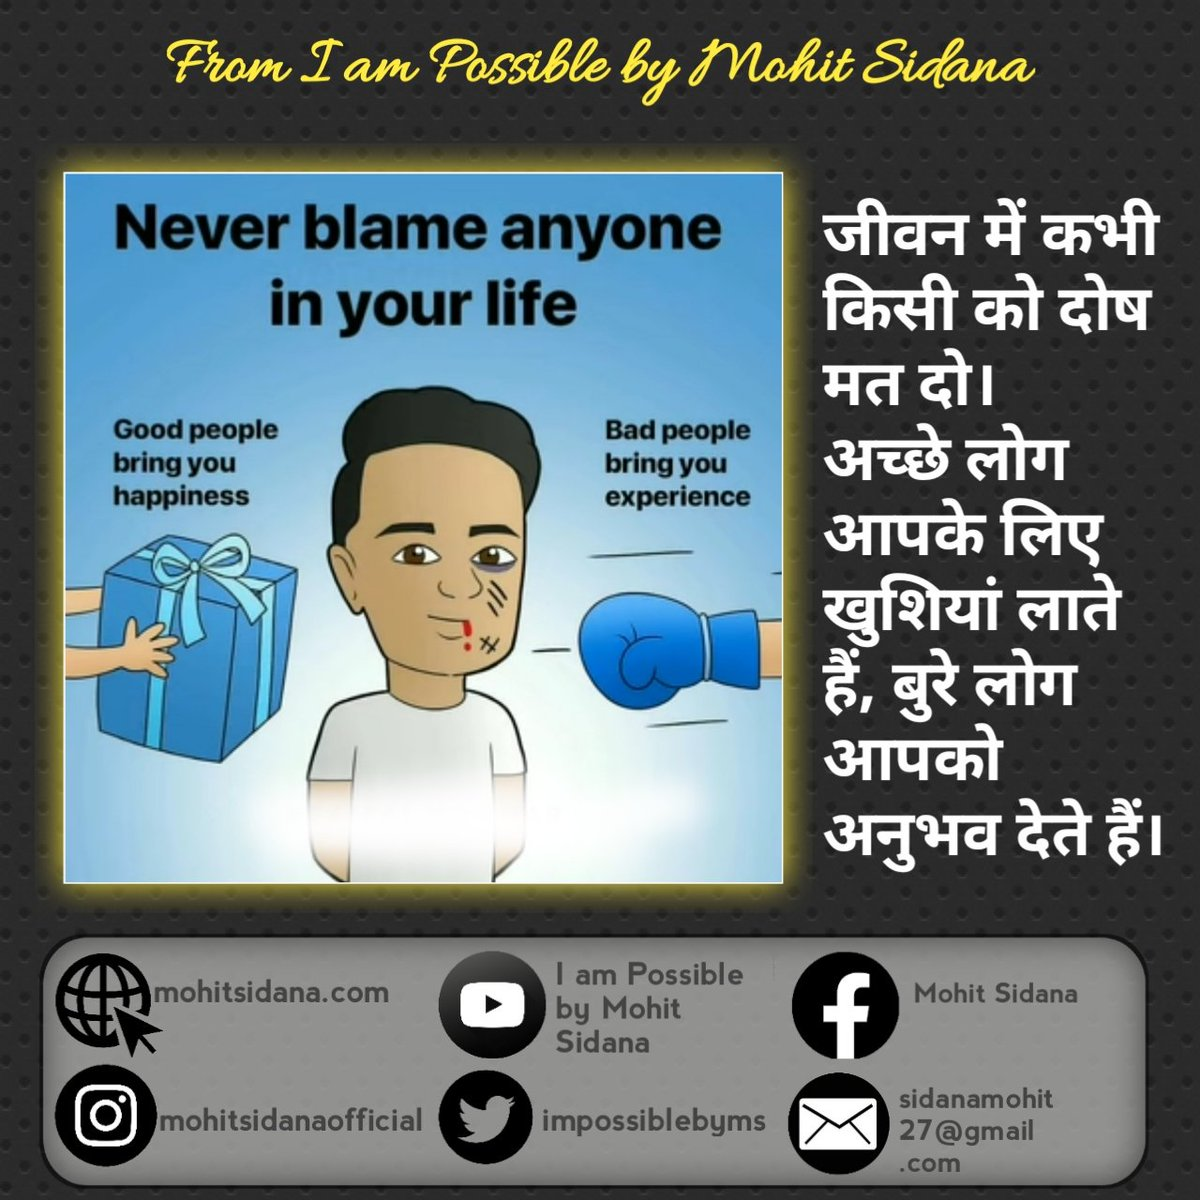 #todaymotivation #iampossible #mohitsidana #GoSelfMade #Dreams #MoneyMastery #DigitalMarketing #startup #howtostartabusiness #1_ON_TRENDING #motivational_thoughts #iampossible #bounce_back #Aasaan_hai #you_can_do_it